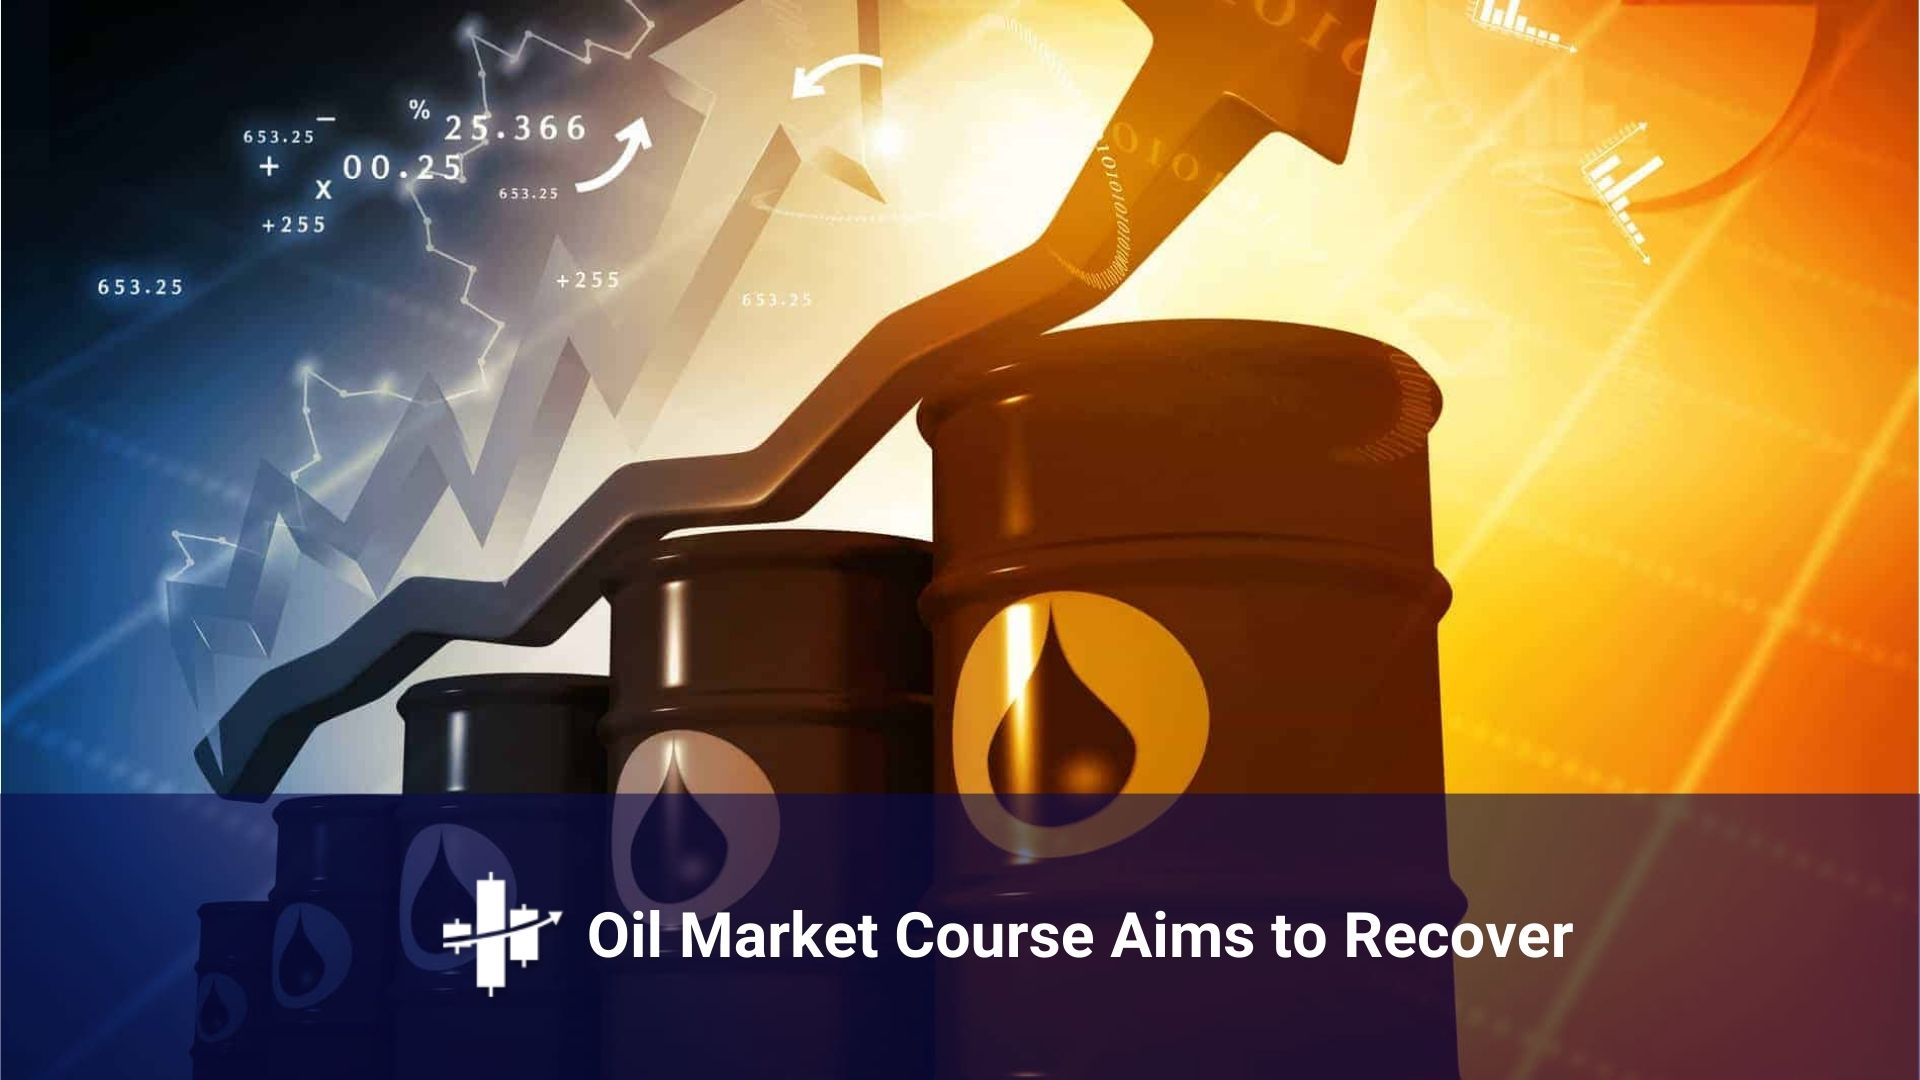 Oil Market Aims to Recover